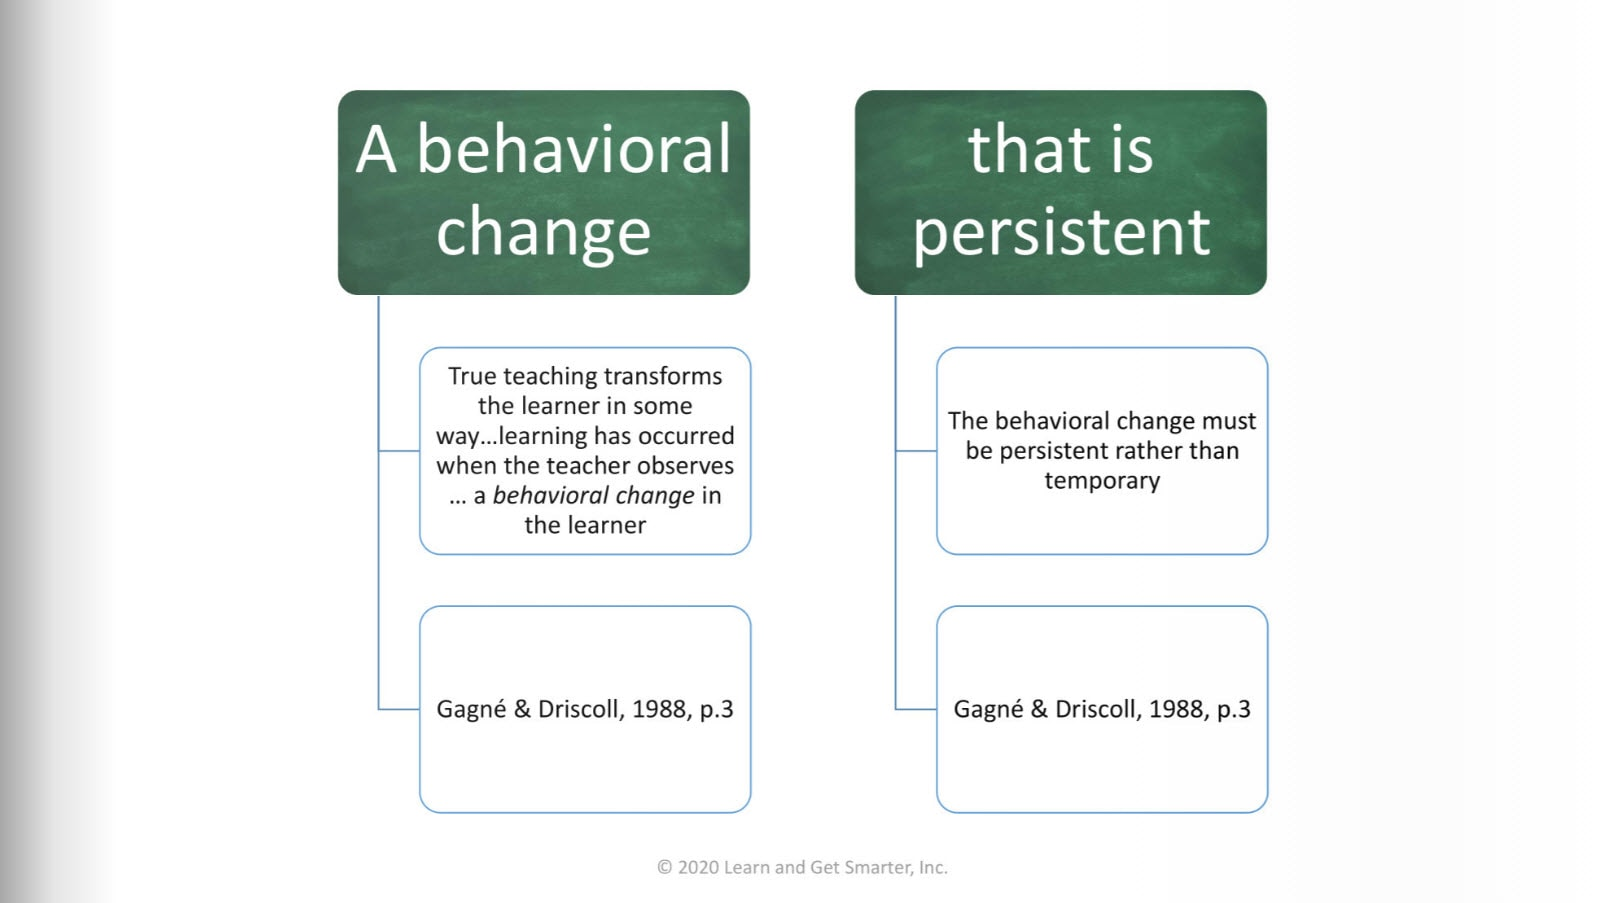 Robert M Gagne tells us that learning is demonstrated by a change in behavior that is persistent over time